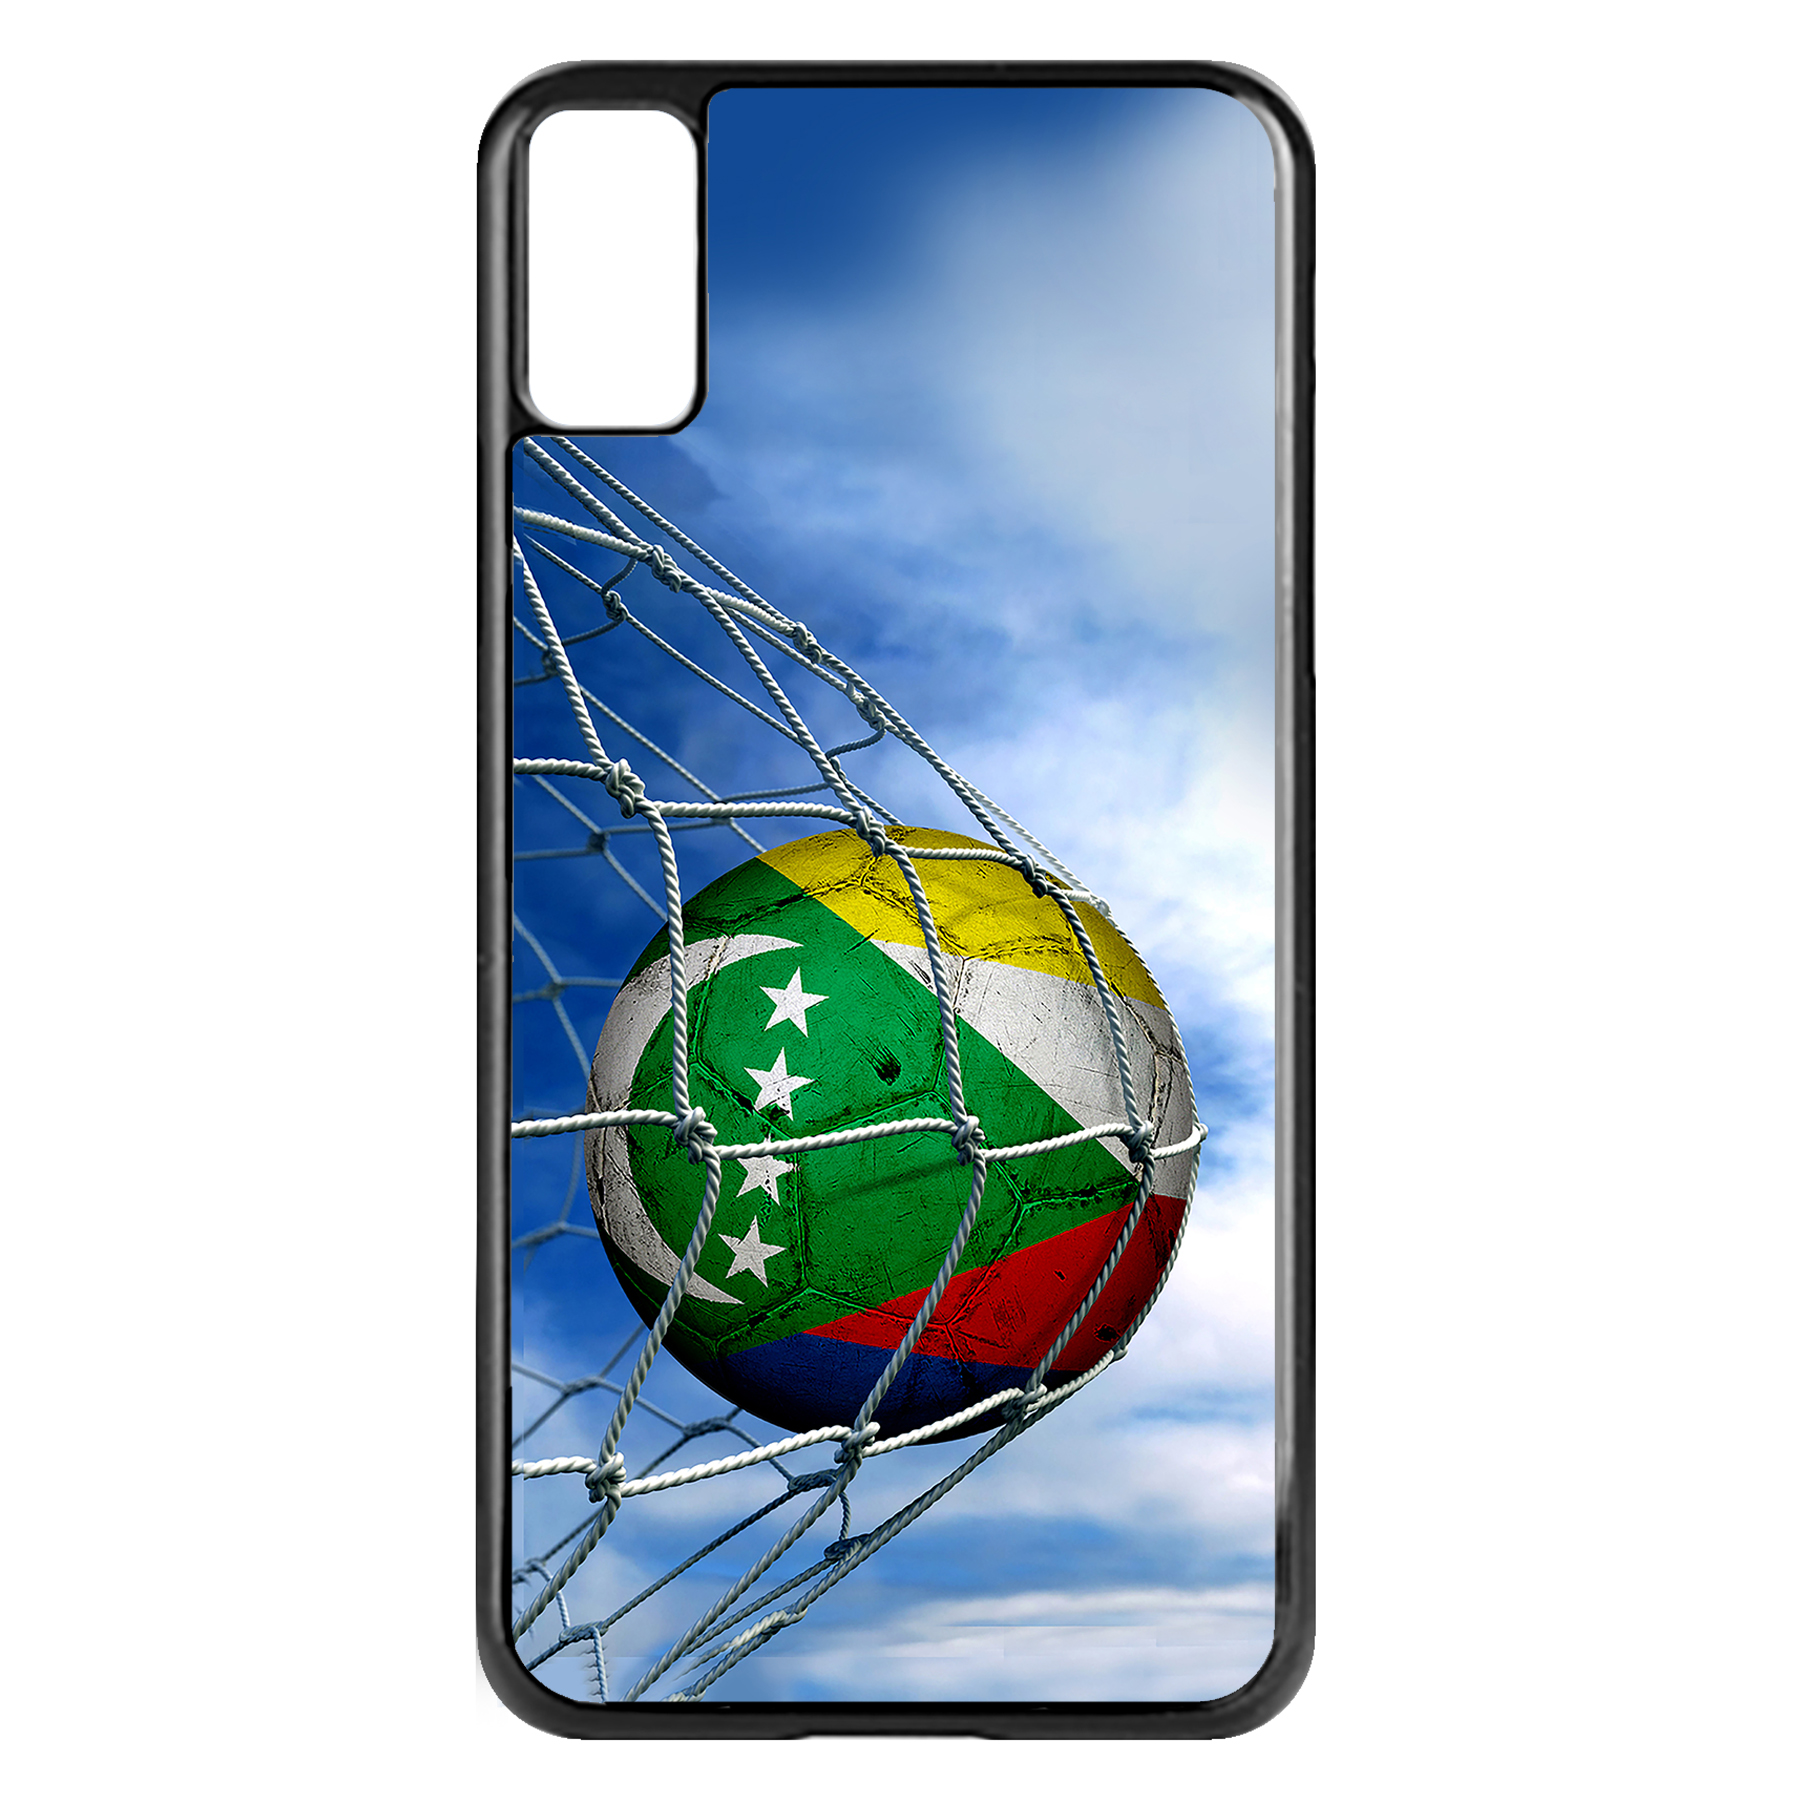 Apple-iPhone-Case-with-Flag-of-Comoros-Comorian-Many-Design-Options thumbnail 91